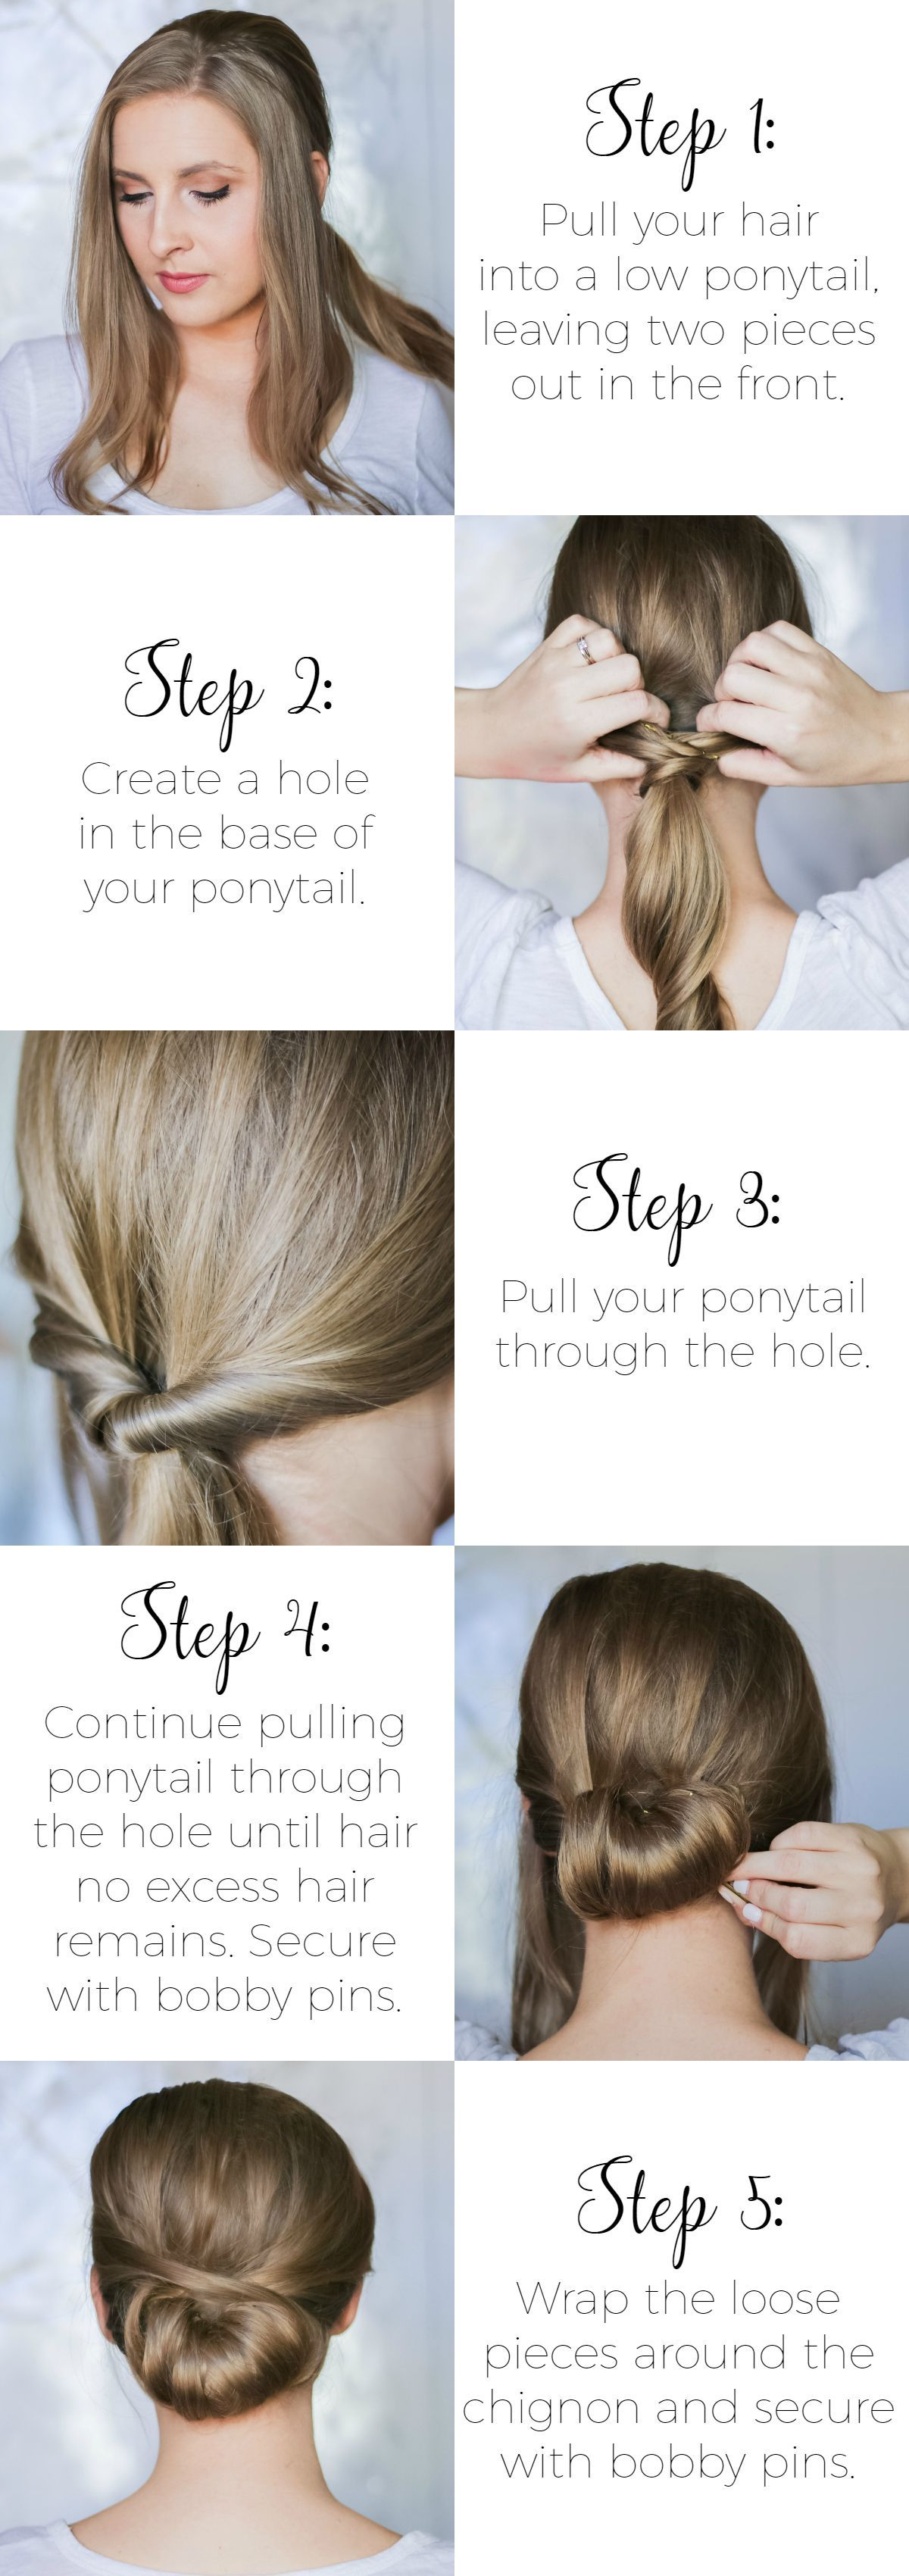 Easy secondday hairstyle tutorials hairstyles pinterest easy